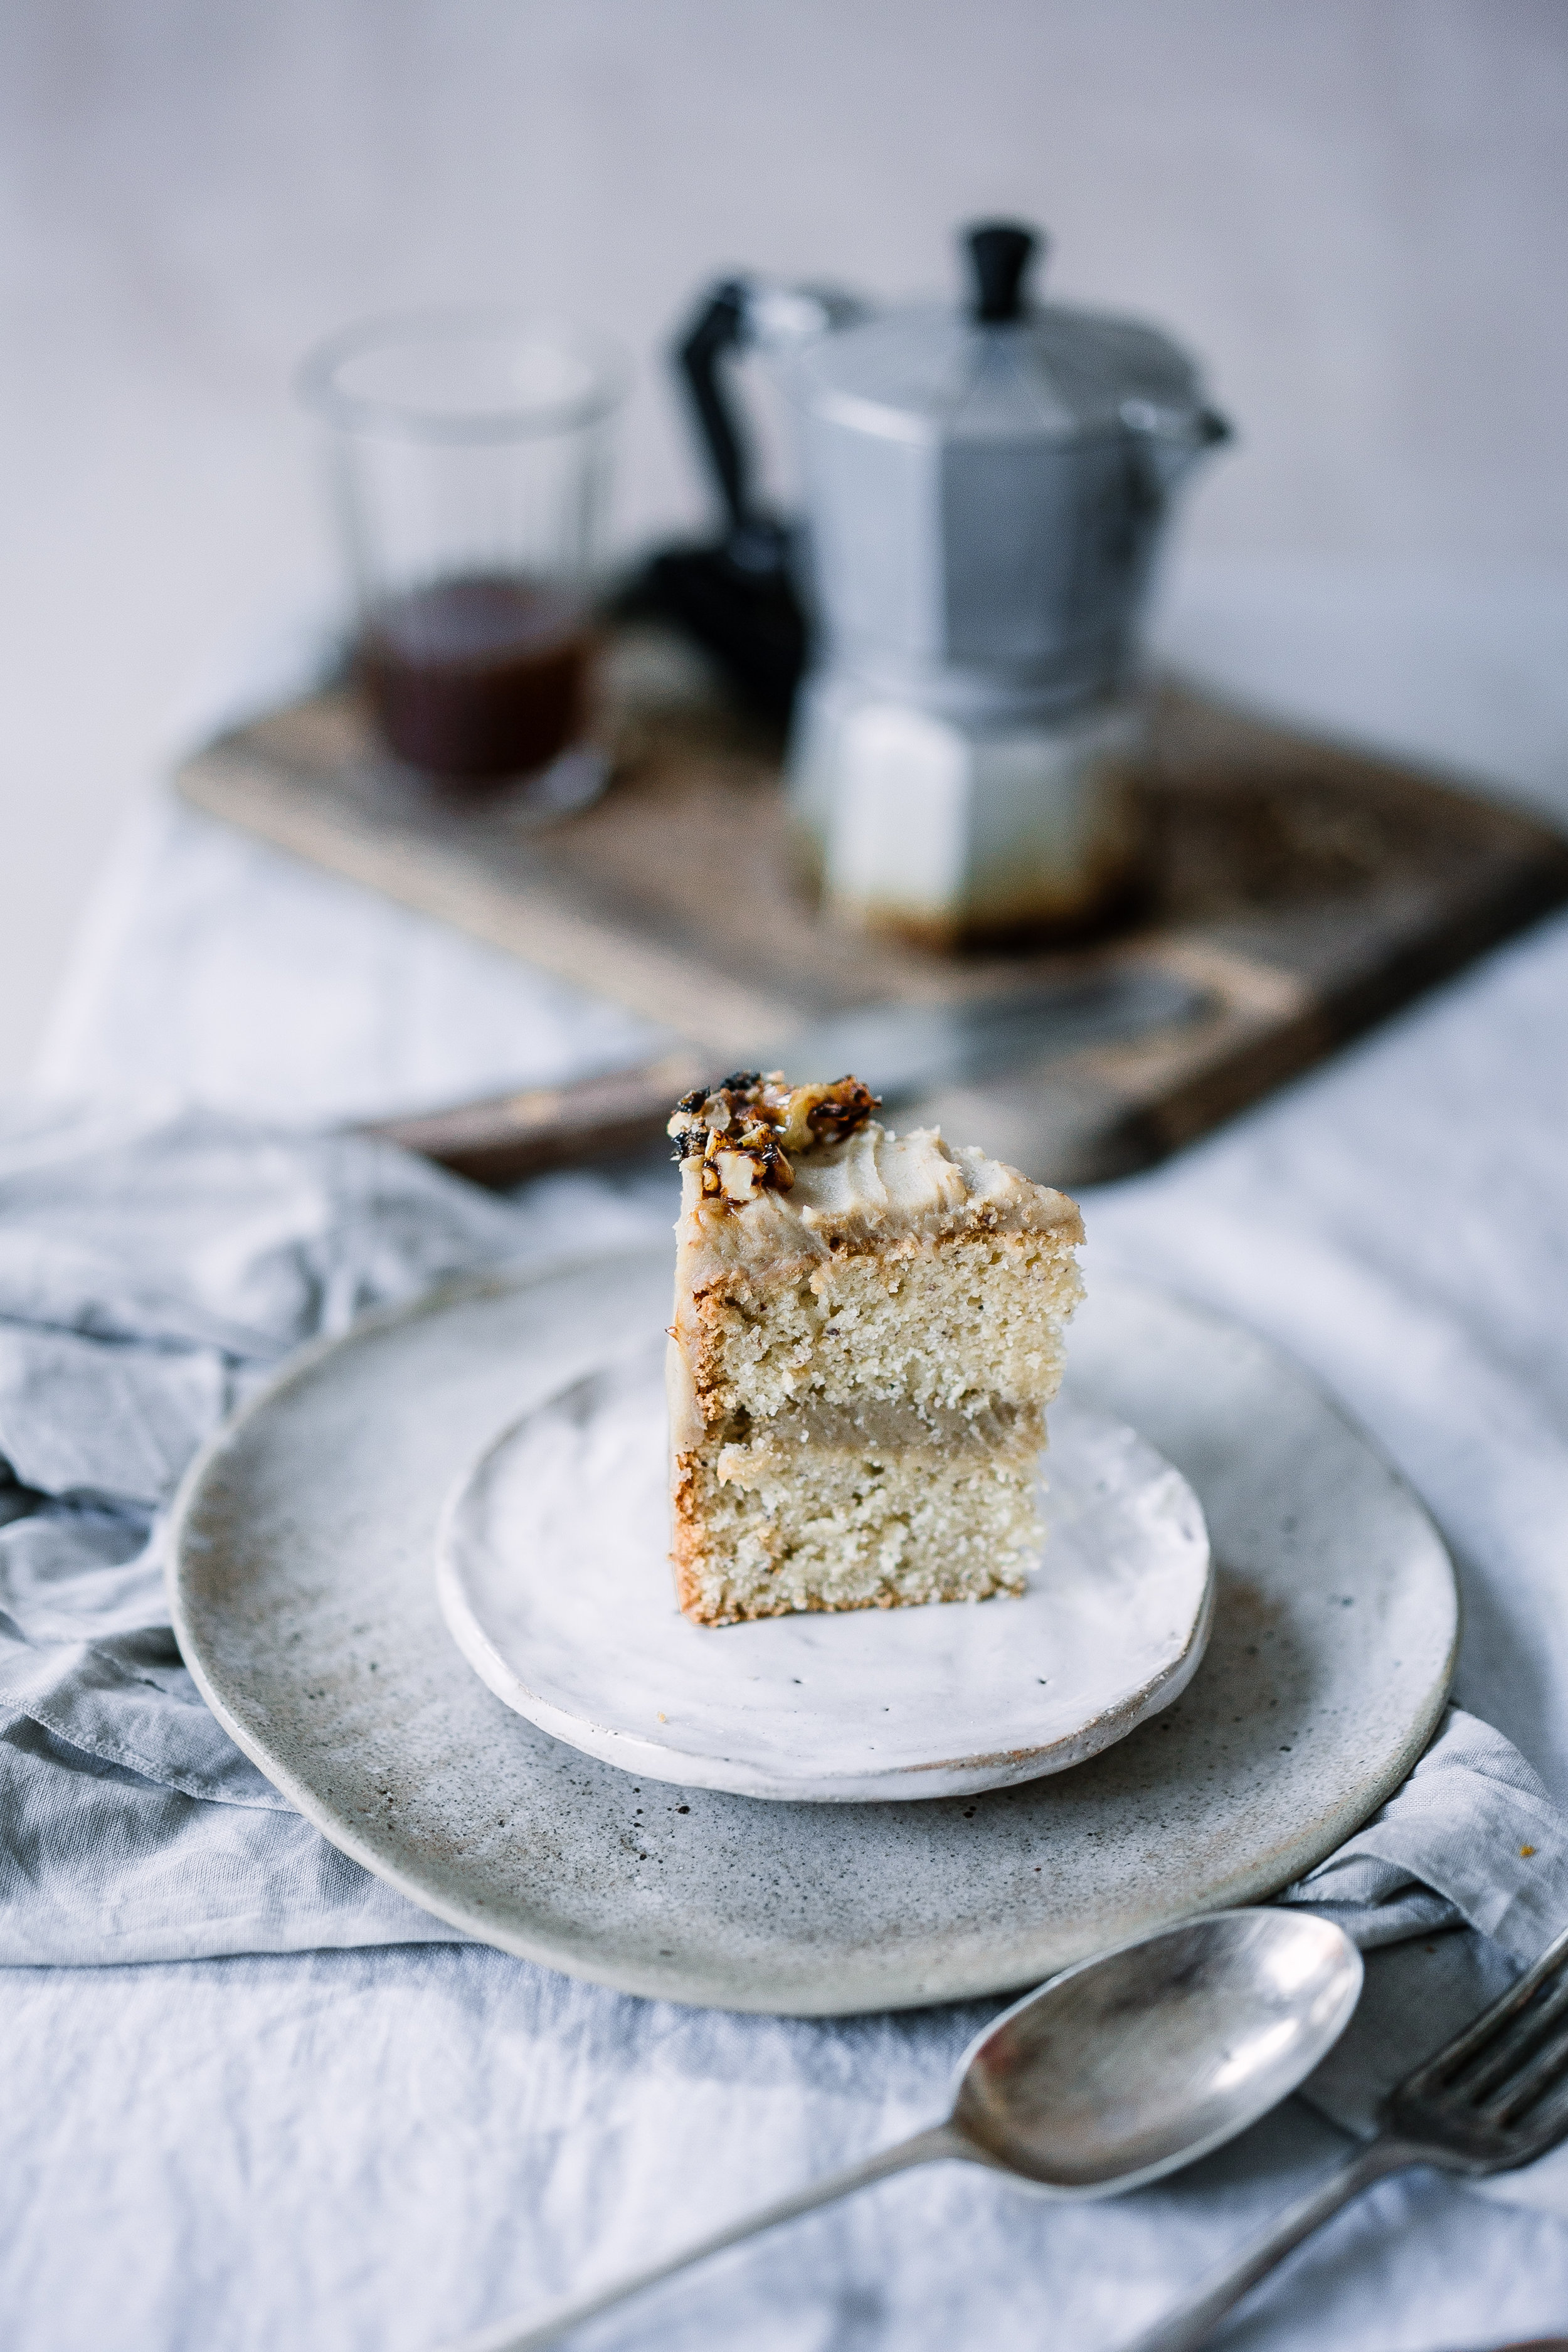 INGREDIENTS  DRY  350 g white unbleached all porpuse wheat flour 100 g icing sugar 1/4 tsp sea salt 1 Tbsp baking powder, heaped    WET  2 Tbsp flax meal + 6 Tbsp water (90ml) 100 ml extra virgin coconut oil  250 ml almond or oat milk  2 tsp of pure vanilla extract 1 lemon the zest only   Frosting:   2-3 medium white sweet potatoes  200 gr cooked chestnuts 50 gr cocoa butter, melted 50 gr raw sugar  2 Tbsp good quality coffee liqueur a dash of vanilla   METHOD Turn the oven at 180°C. Grease 3 tins of 10 cm with olive oil.  - Mix the 2 Tbsp flax meal + 6 Tbsp water in a small glass. Set aside for 5 minutes. - In a large bowl mix all the dry ingredients together - In a jar mix the liquid ingredients together - Add the flax seeds to the liquid ingredients - In a large bowl incorporate the dry with the wet, gently folding them together - Pass the batter into the tins - Cook for 30-40 minutes. Set aside to cool   WHILE COOKING:  Melt the cocoa butter in a bain-marie. Meanwhile, wash and peel the potatoes and cut into chunks.Steam the potatoes for 15-20 minutes in a steamer (or roast whole potatoes 30-40 min).  Add  all  the frosting ingredients to the food processor. Blend into a smooth cream. The frosting should be thick, however if necessary add some spoons of milk to keep the food processor running. Put the frosting into fridge overnight or for few hours until is thick enough to decorate the cake  ASSEMBLING THE CAKE:  Assemble the cake when the cake has cooled down and the frosting is solid enough to be spread. If the cakes are ronded cut the round top with a very sharp knife.  Place the first cake on your serving plate and spread a scoop of frosting on it, enough to have a good thick filling ( 1cm at least), place the second cake, repeat. And last the third cake on top, but upside down so the perfect bottom become the top of the cake.  Scoop some frosting on the top and with a spatula start spreading to the sides and down around the cake.  If the cake is fragile sta